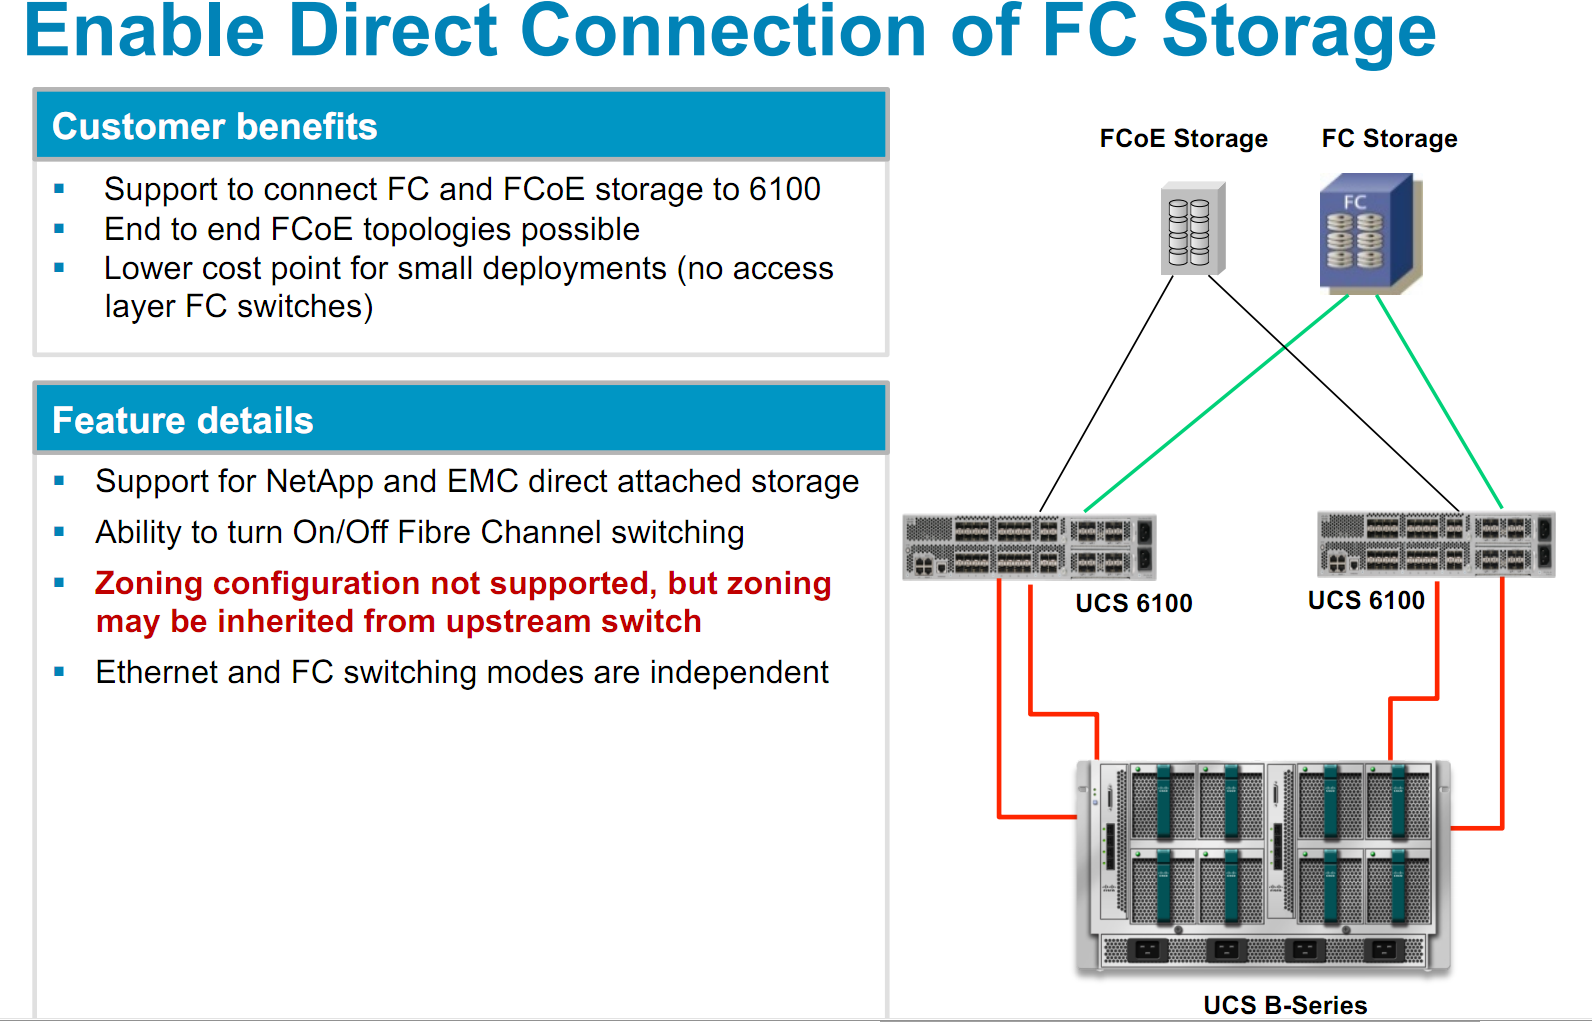 Booting UCS from EMC VNX5300 - Cisco Community